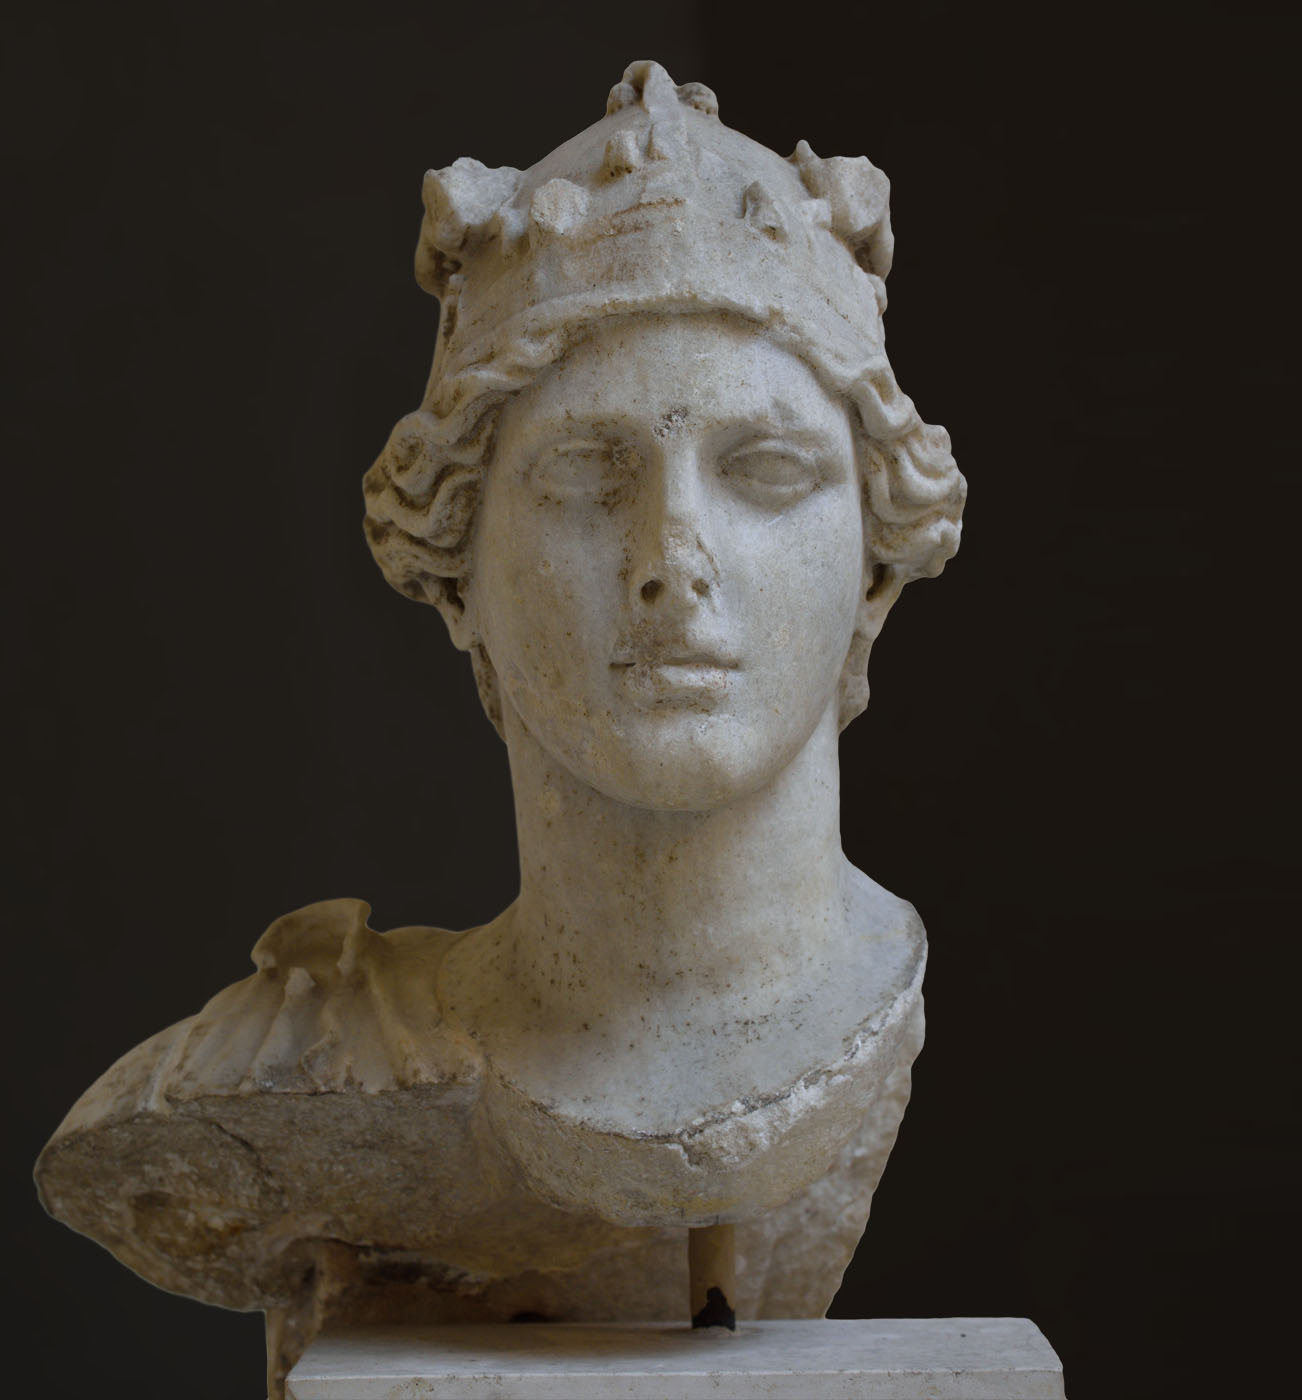 Athena with attic helmet. Head in Parian marble, body in Pentelic marble. 2nd cent. CE. Inv. No. 1399. Ostia, Archaeological Museum